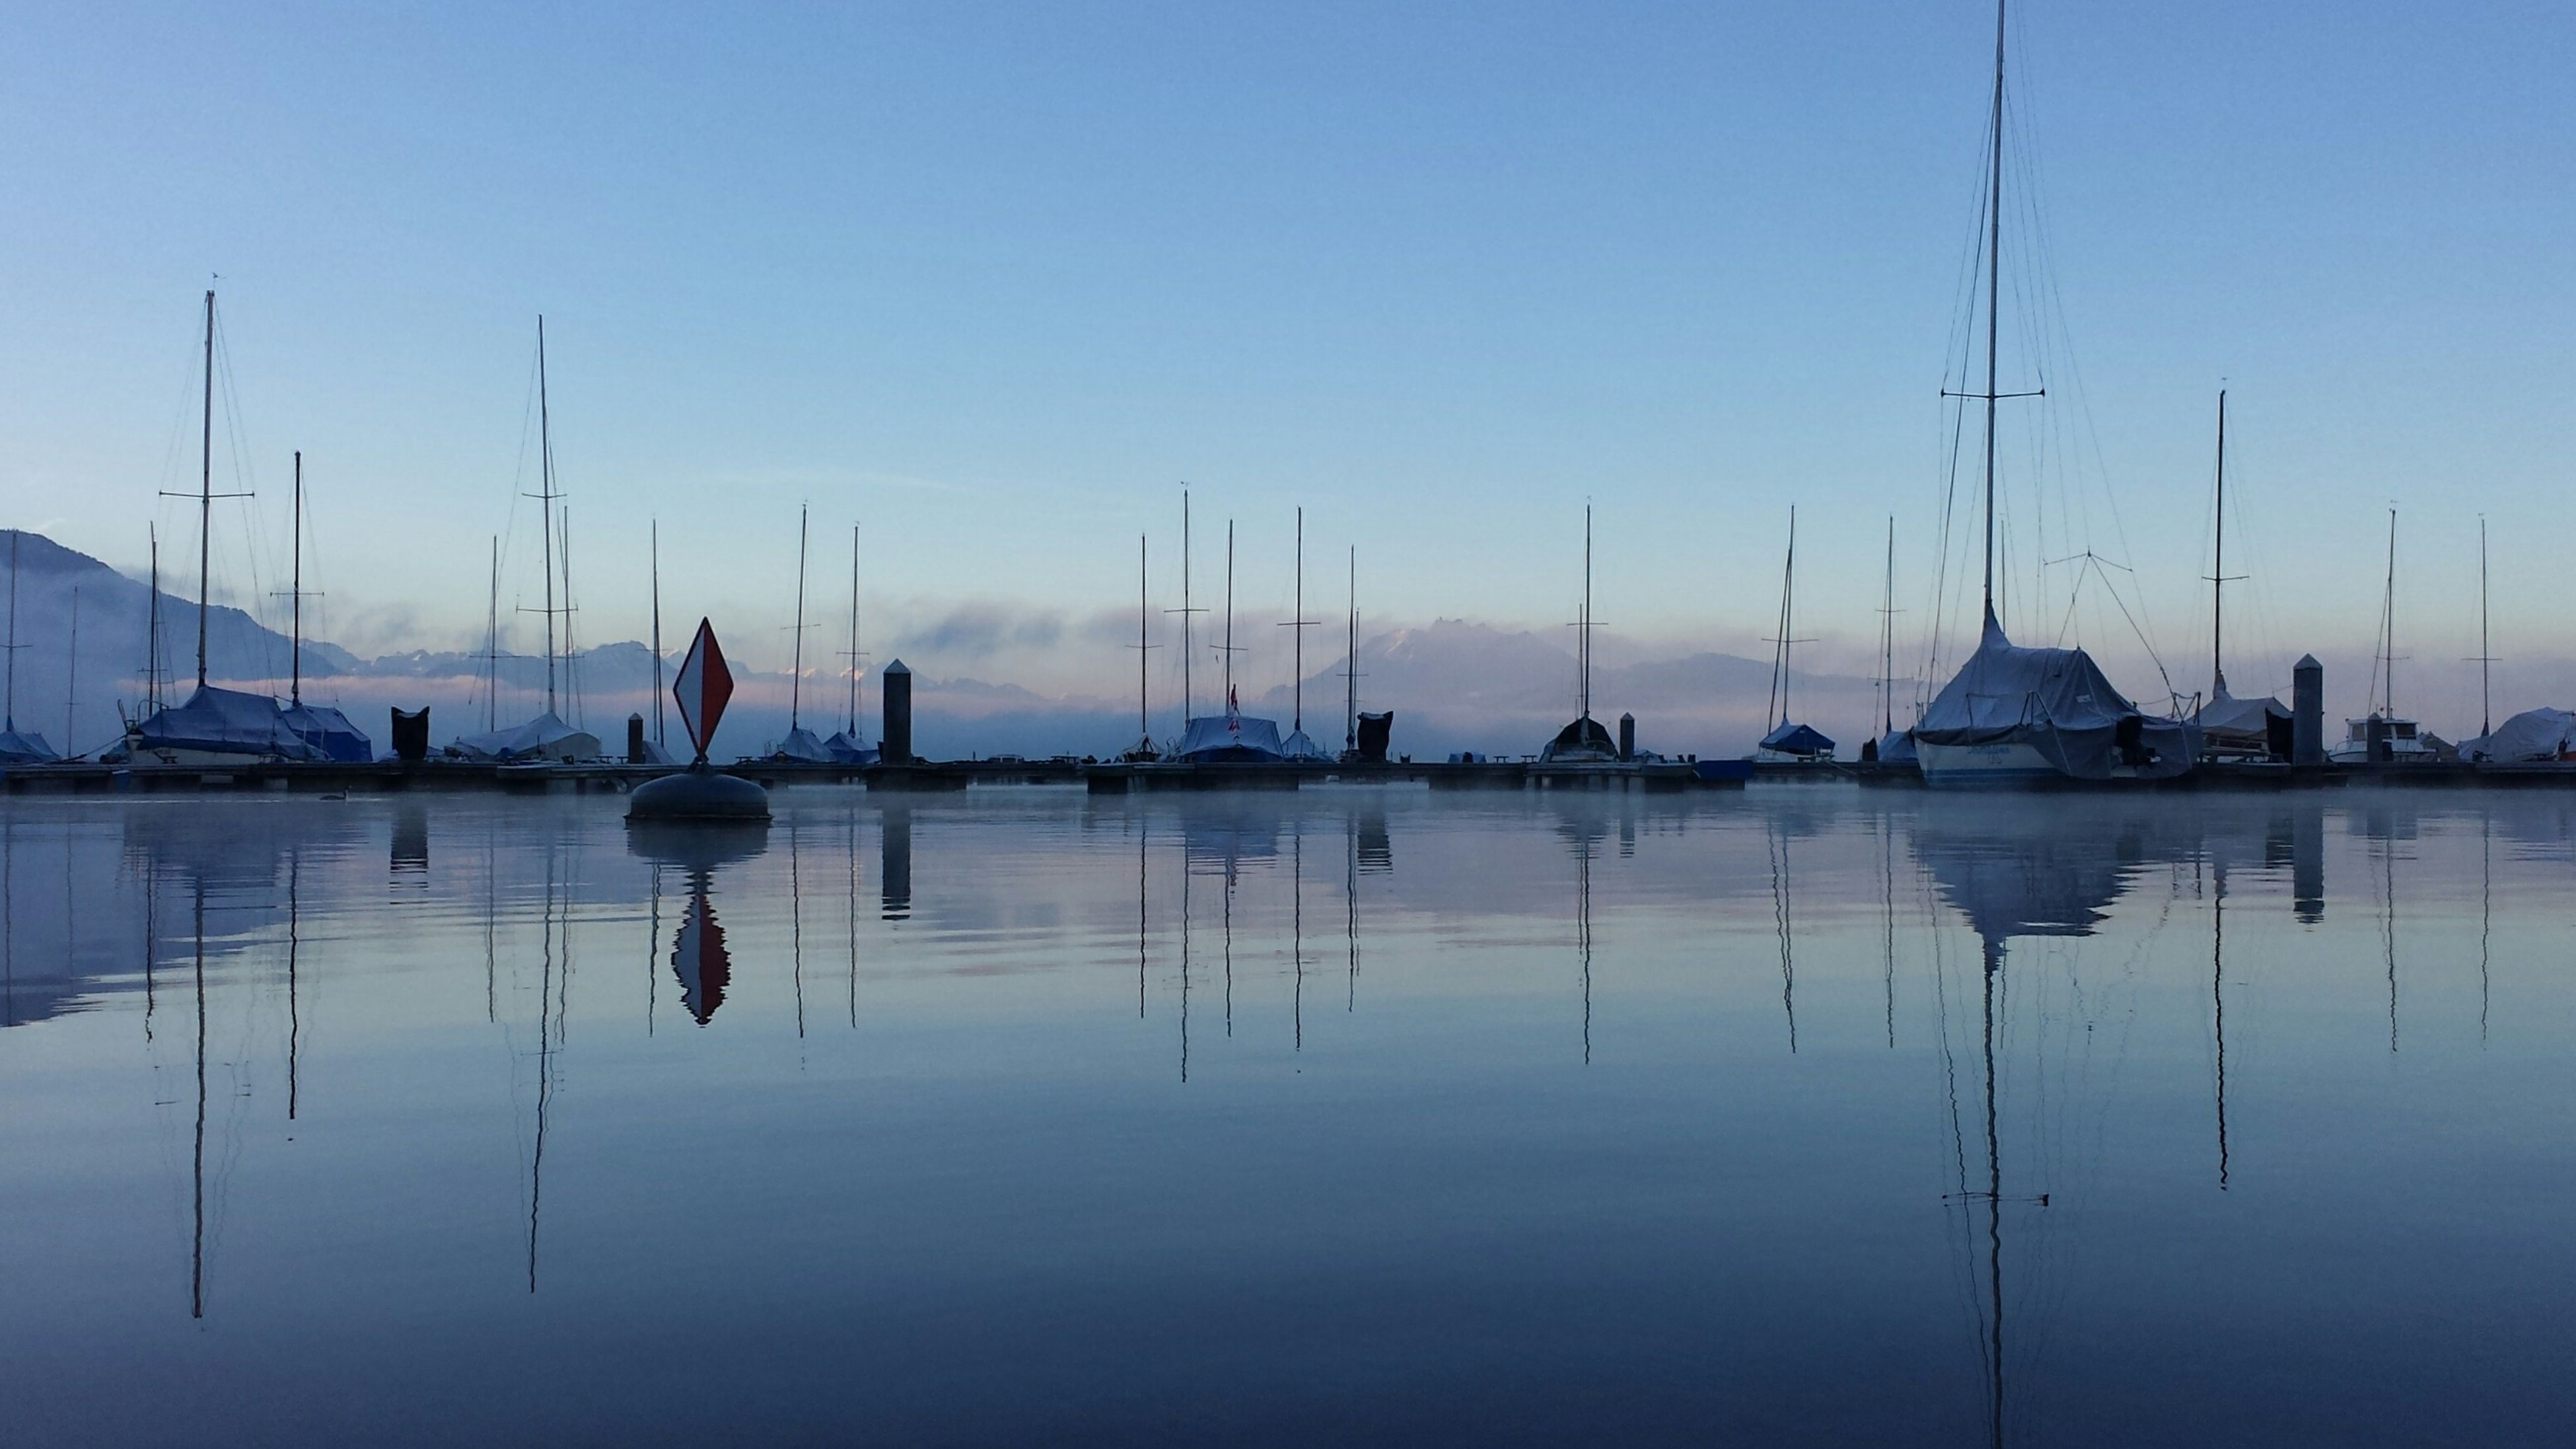 nautical vessel, water, transportation, boat, moored, mode of transport, mast, reflection, sailboat, sea, waterfront, harbor, clear sky, sky, tranquil scene, tranquility, nature, scenics, blue, lake